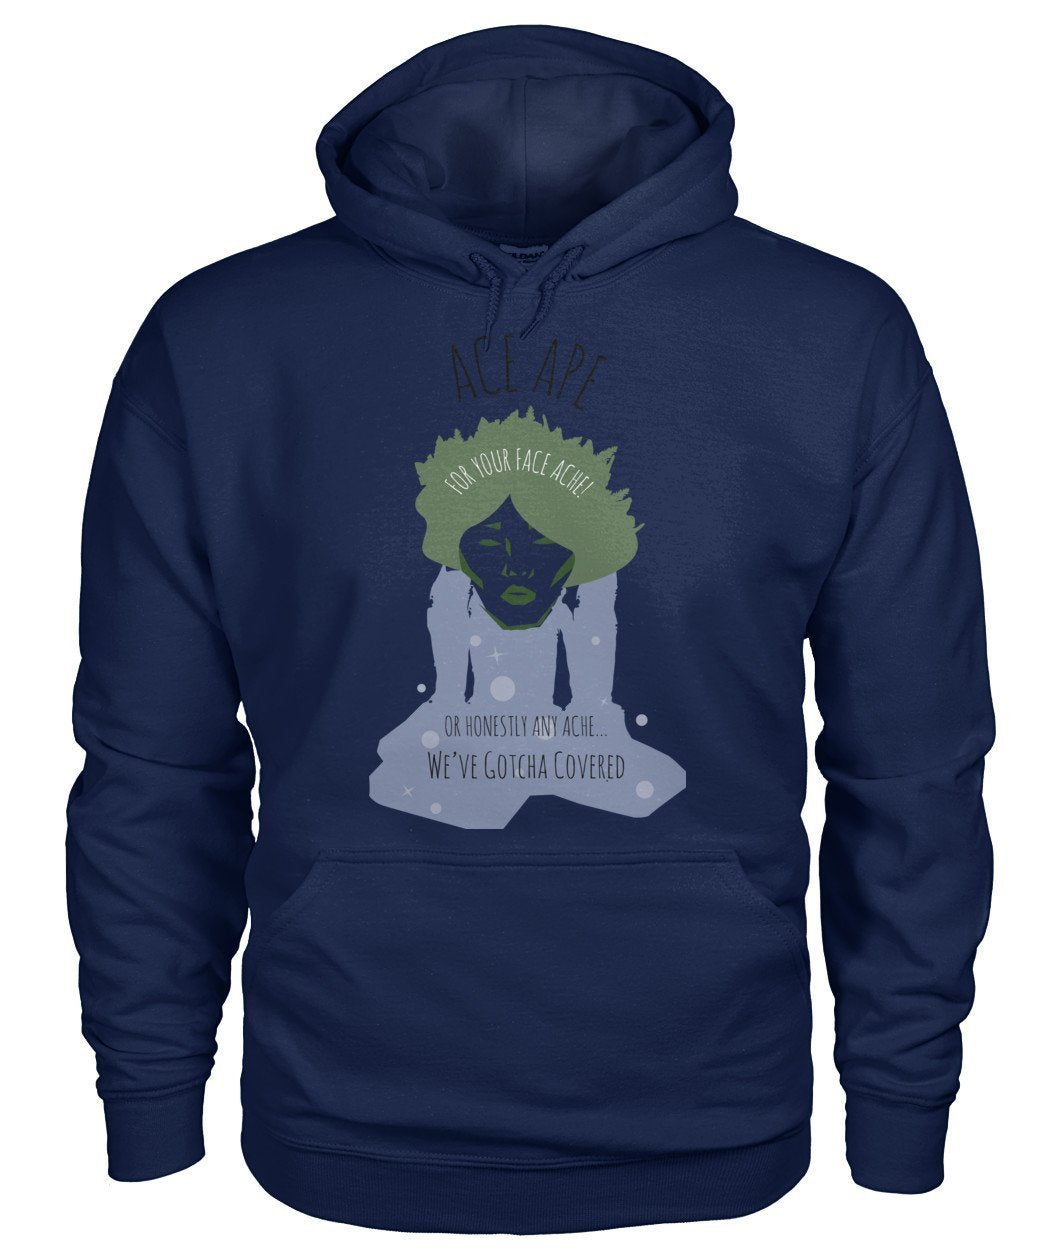 Hoodies Navy / S Face Ache Hoodie AceApe CBD Dispensary